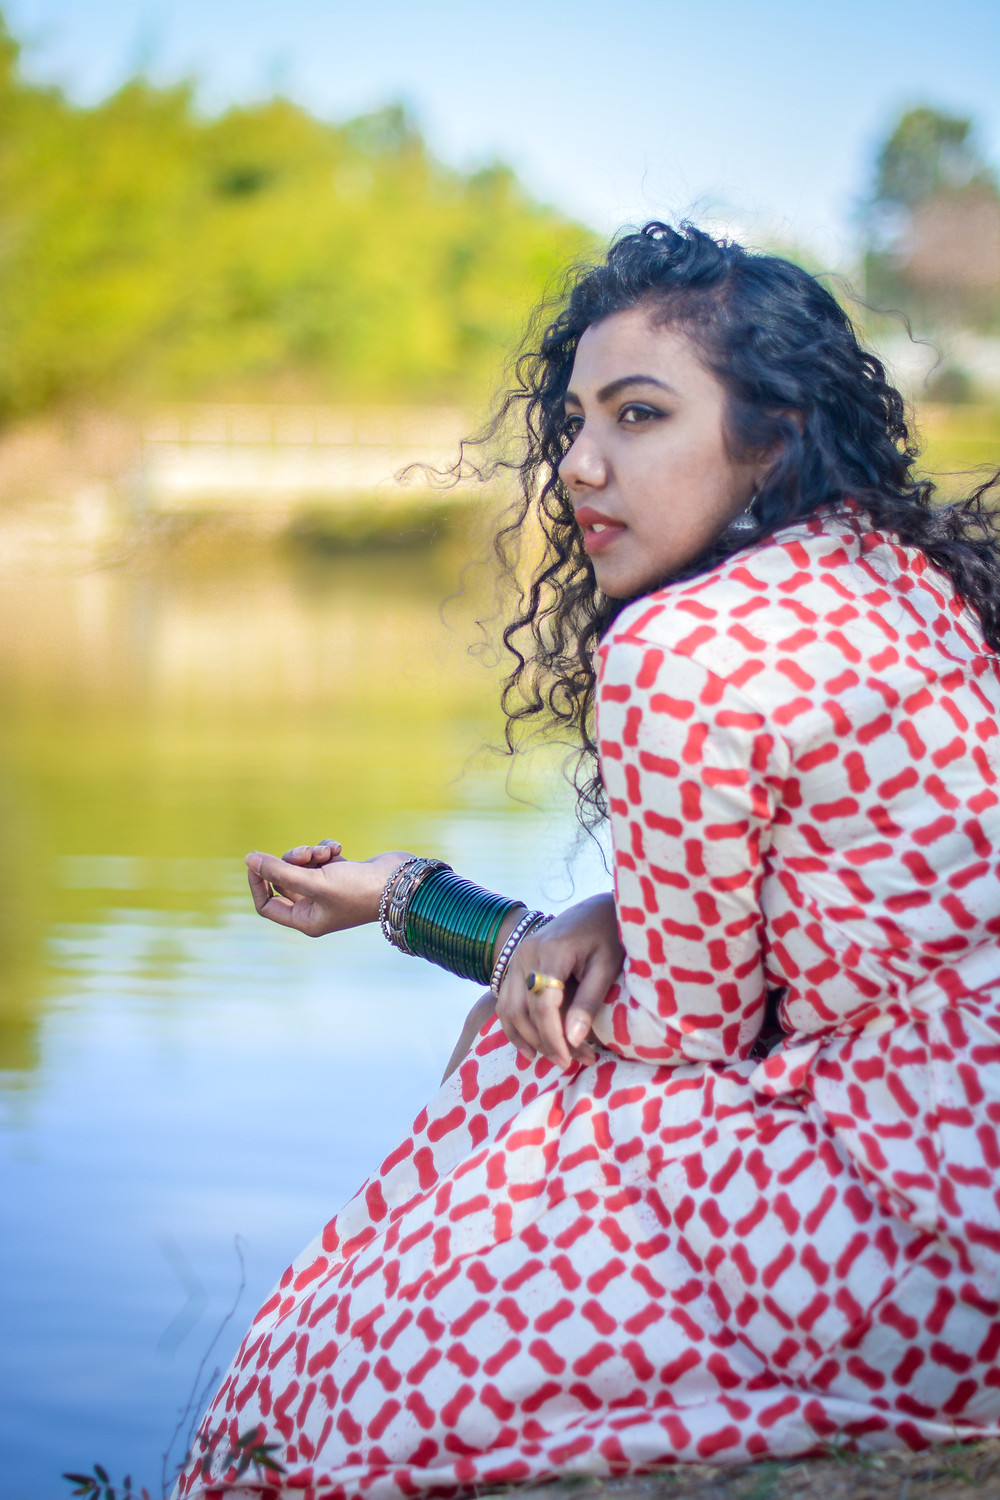 The Curly Mode, Poetry, Fashion Blog